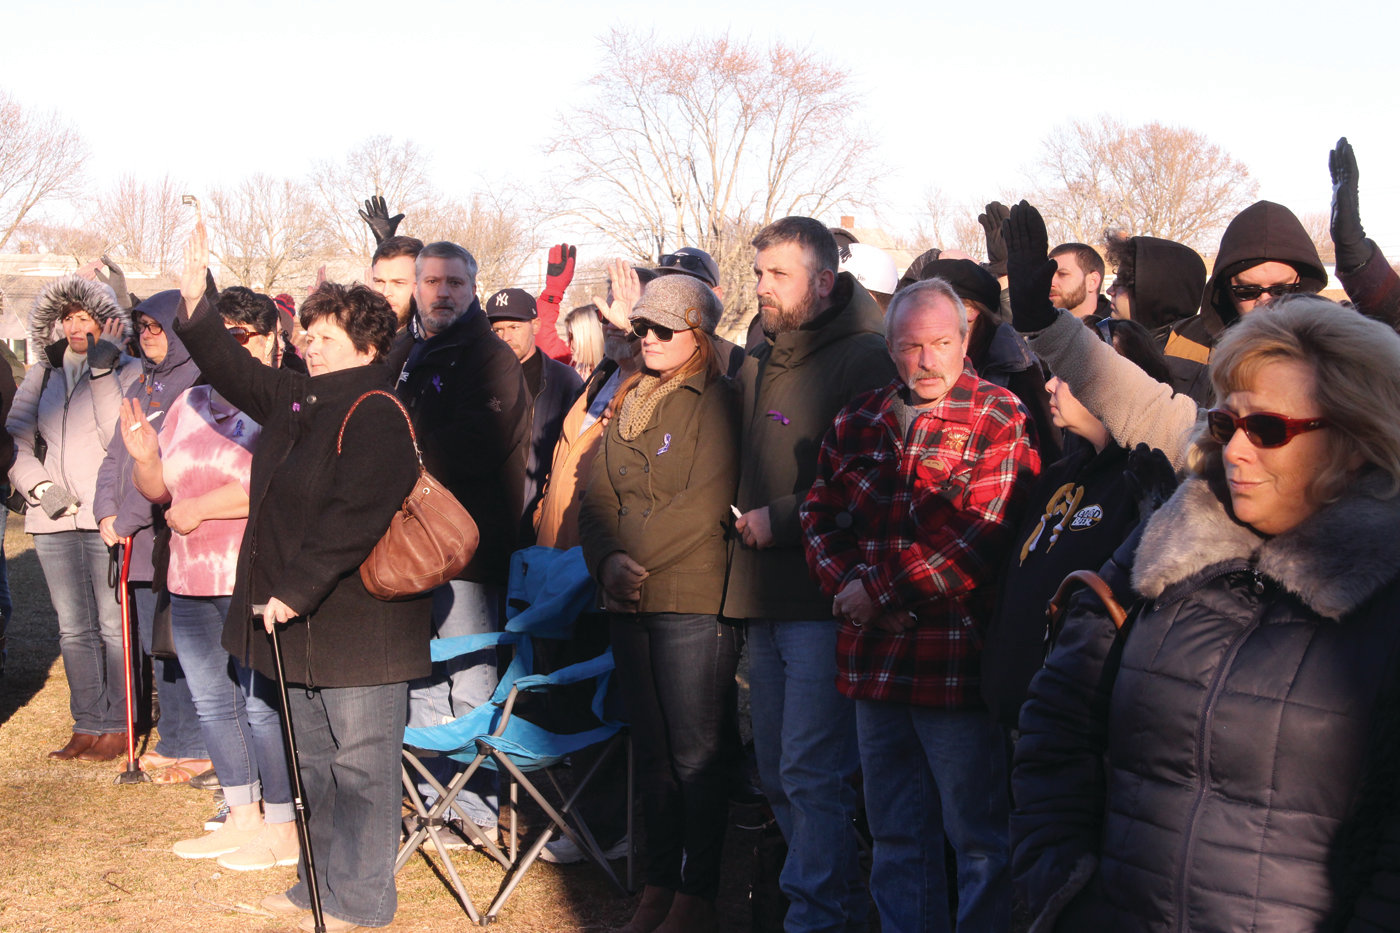 CLOSE TO HOME: Many of those in attendance for a March vigil in honor of the late Lauren Ise raised their hands when Paul Ruo asked how many knew someone who has been affected by domestic violence.